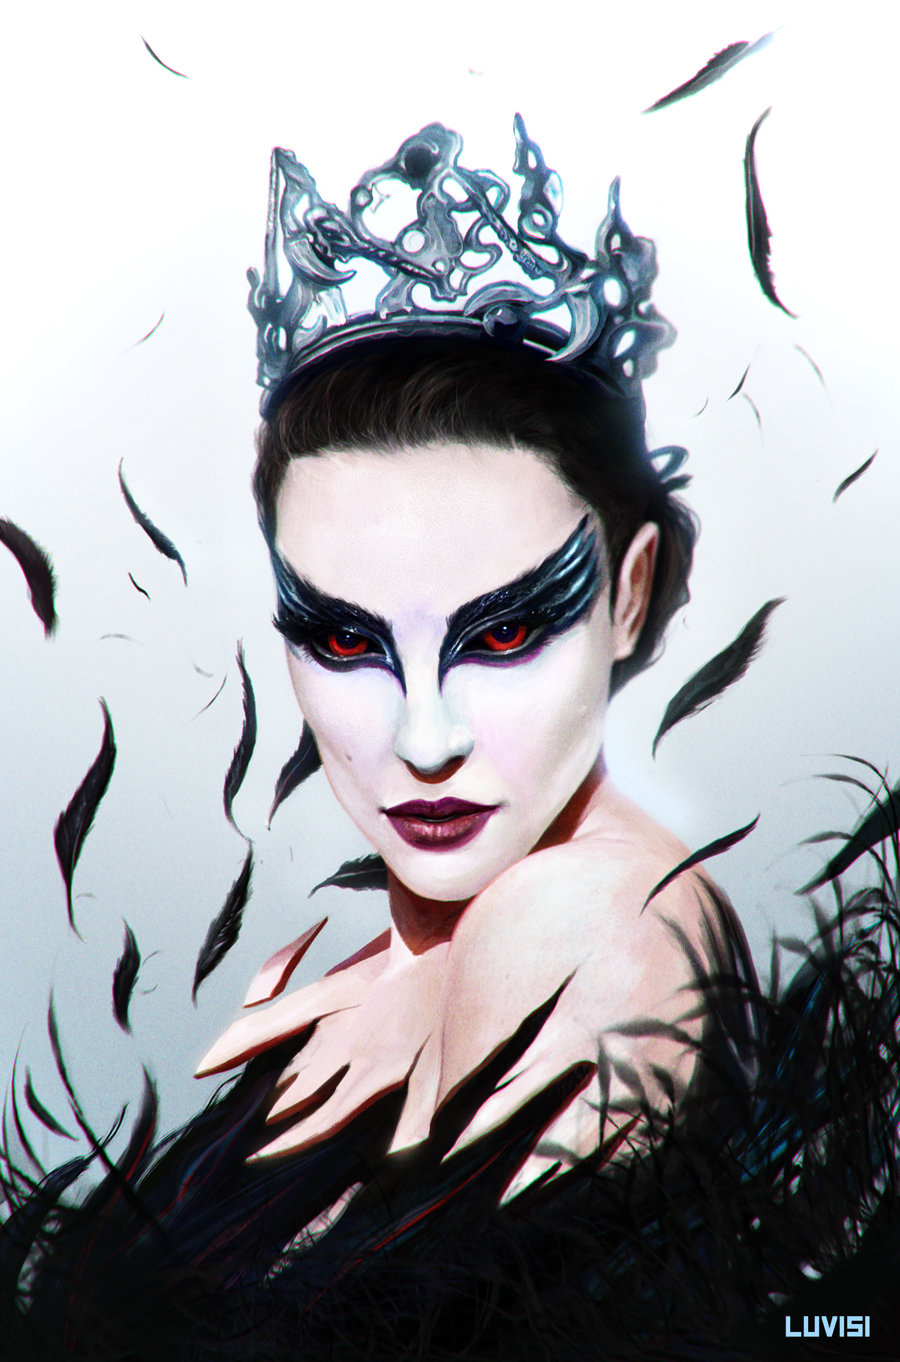 Dan luvisi the black swan by adonihs d3ajfdz 1